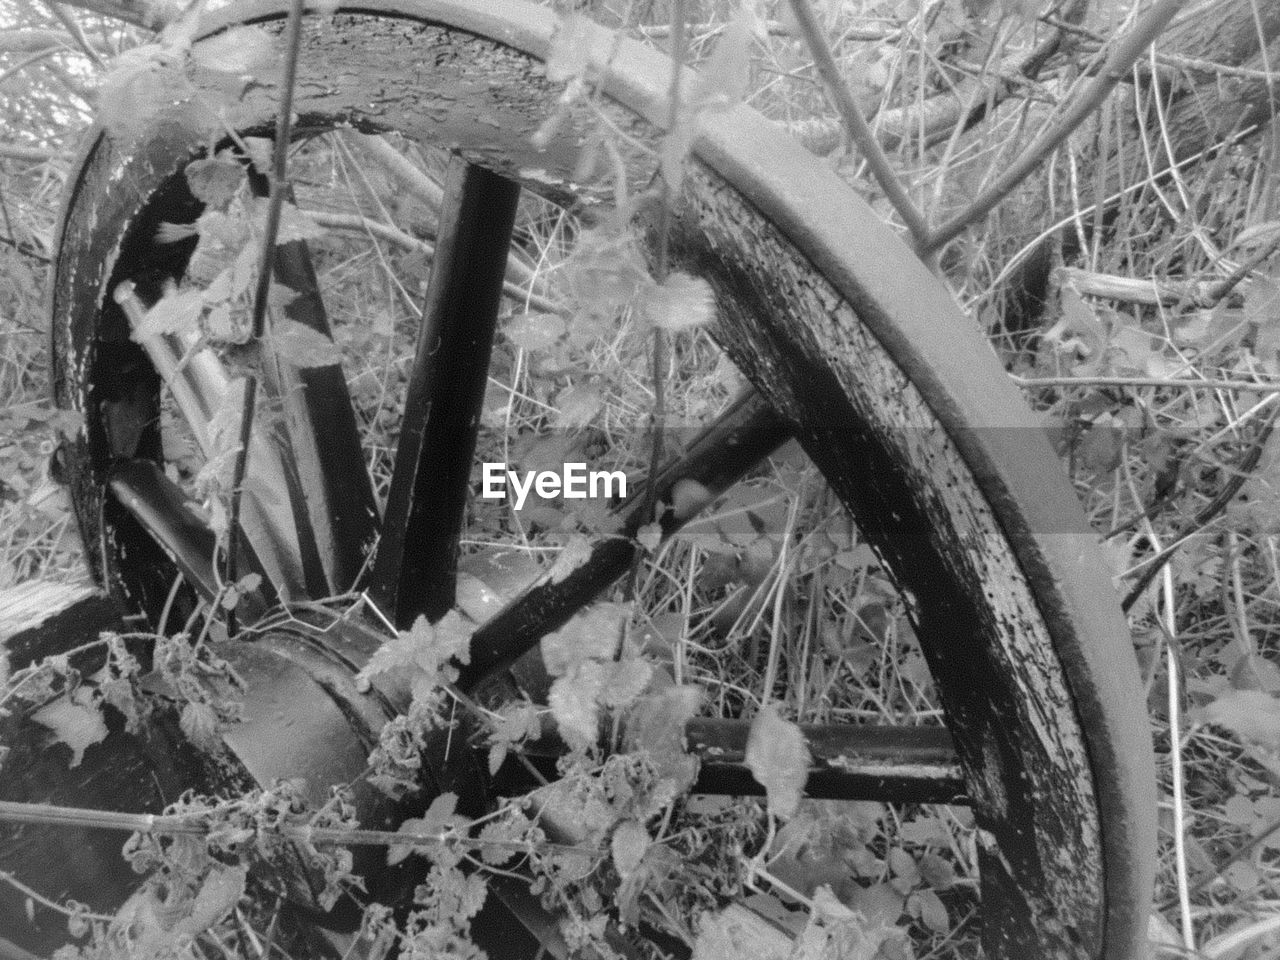 abandoned, wheel, no people, leaf, plant, close-up, day, outdoors